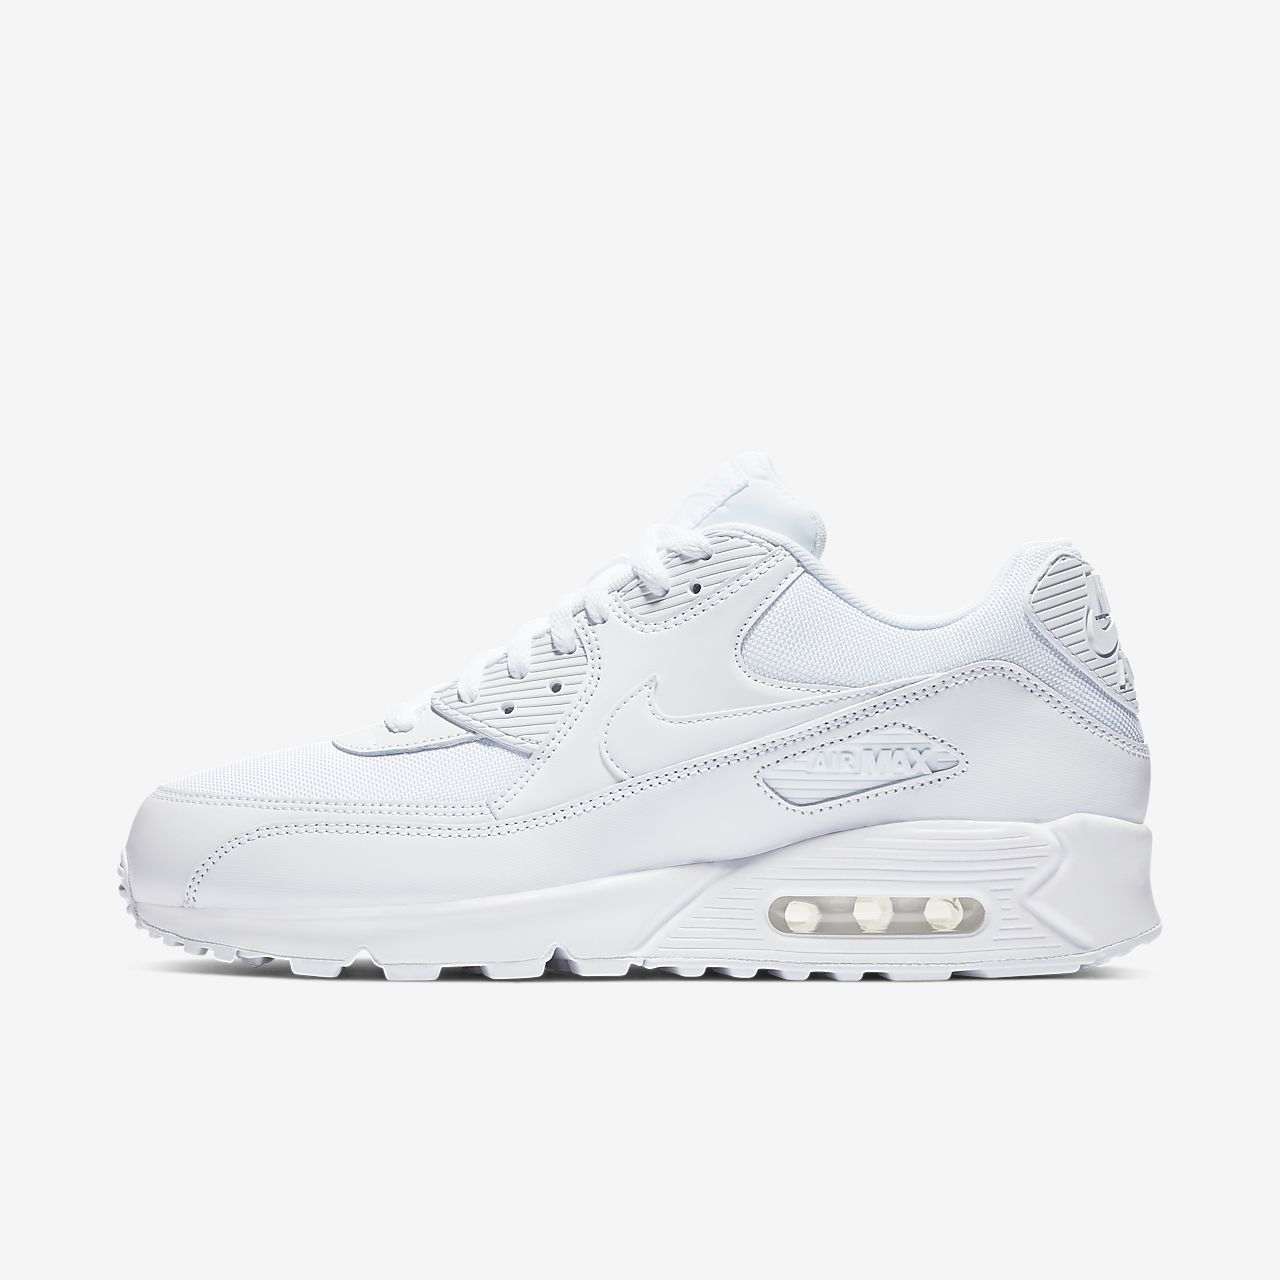 Overstock Wholesale Nike Air Max 90 Mens Trianers Sale Outlet